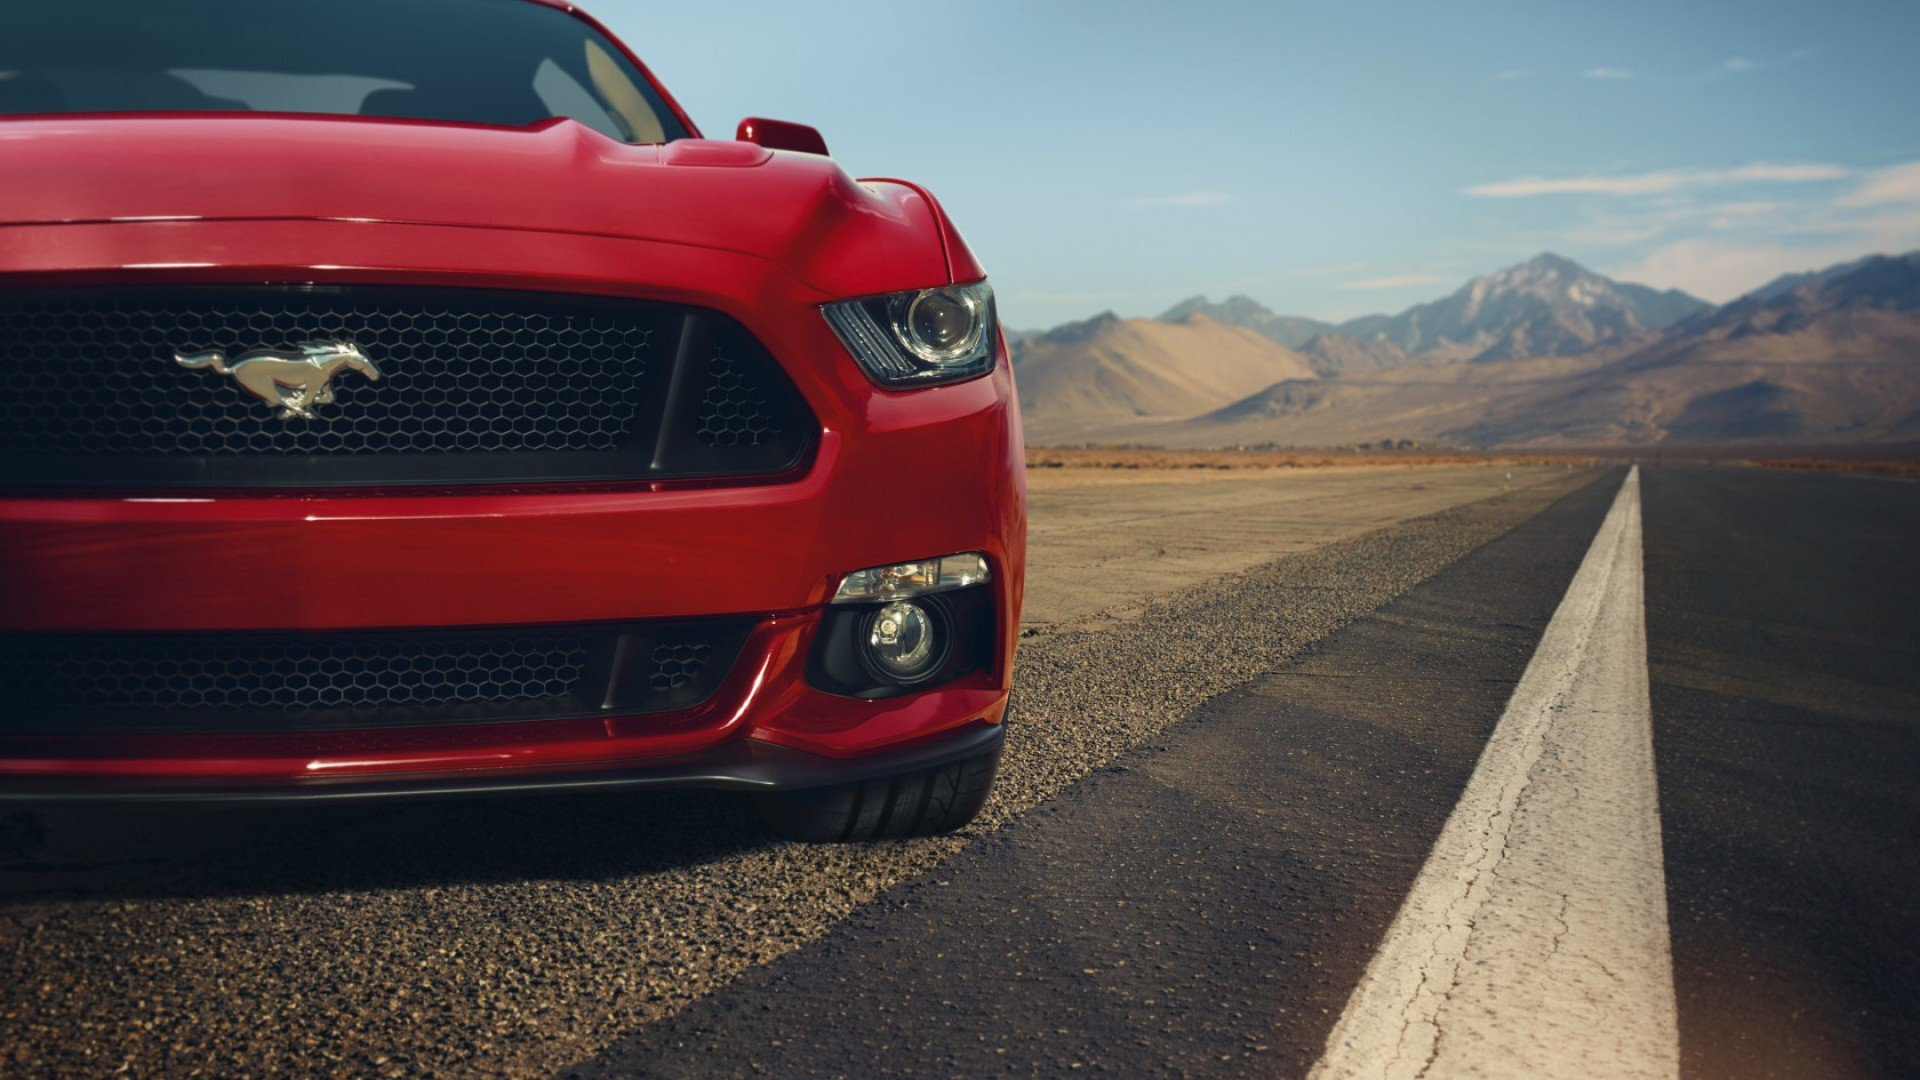 1920x1080 Ford Mustang Gt Red Front Muscle Car Laptop Full Hd 1080p